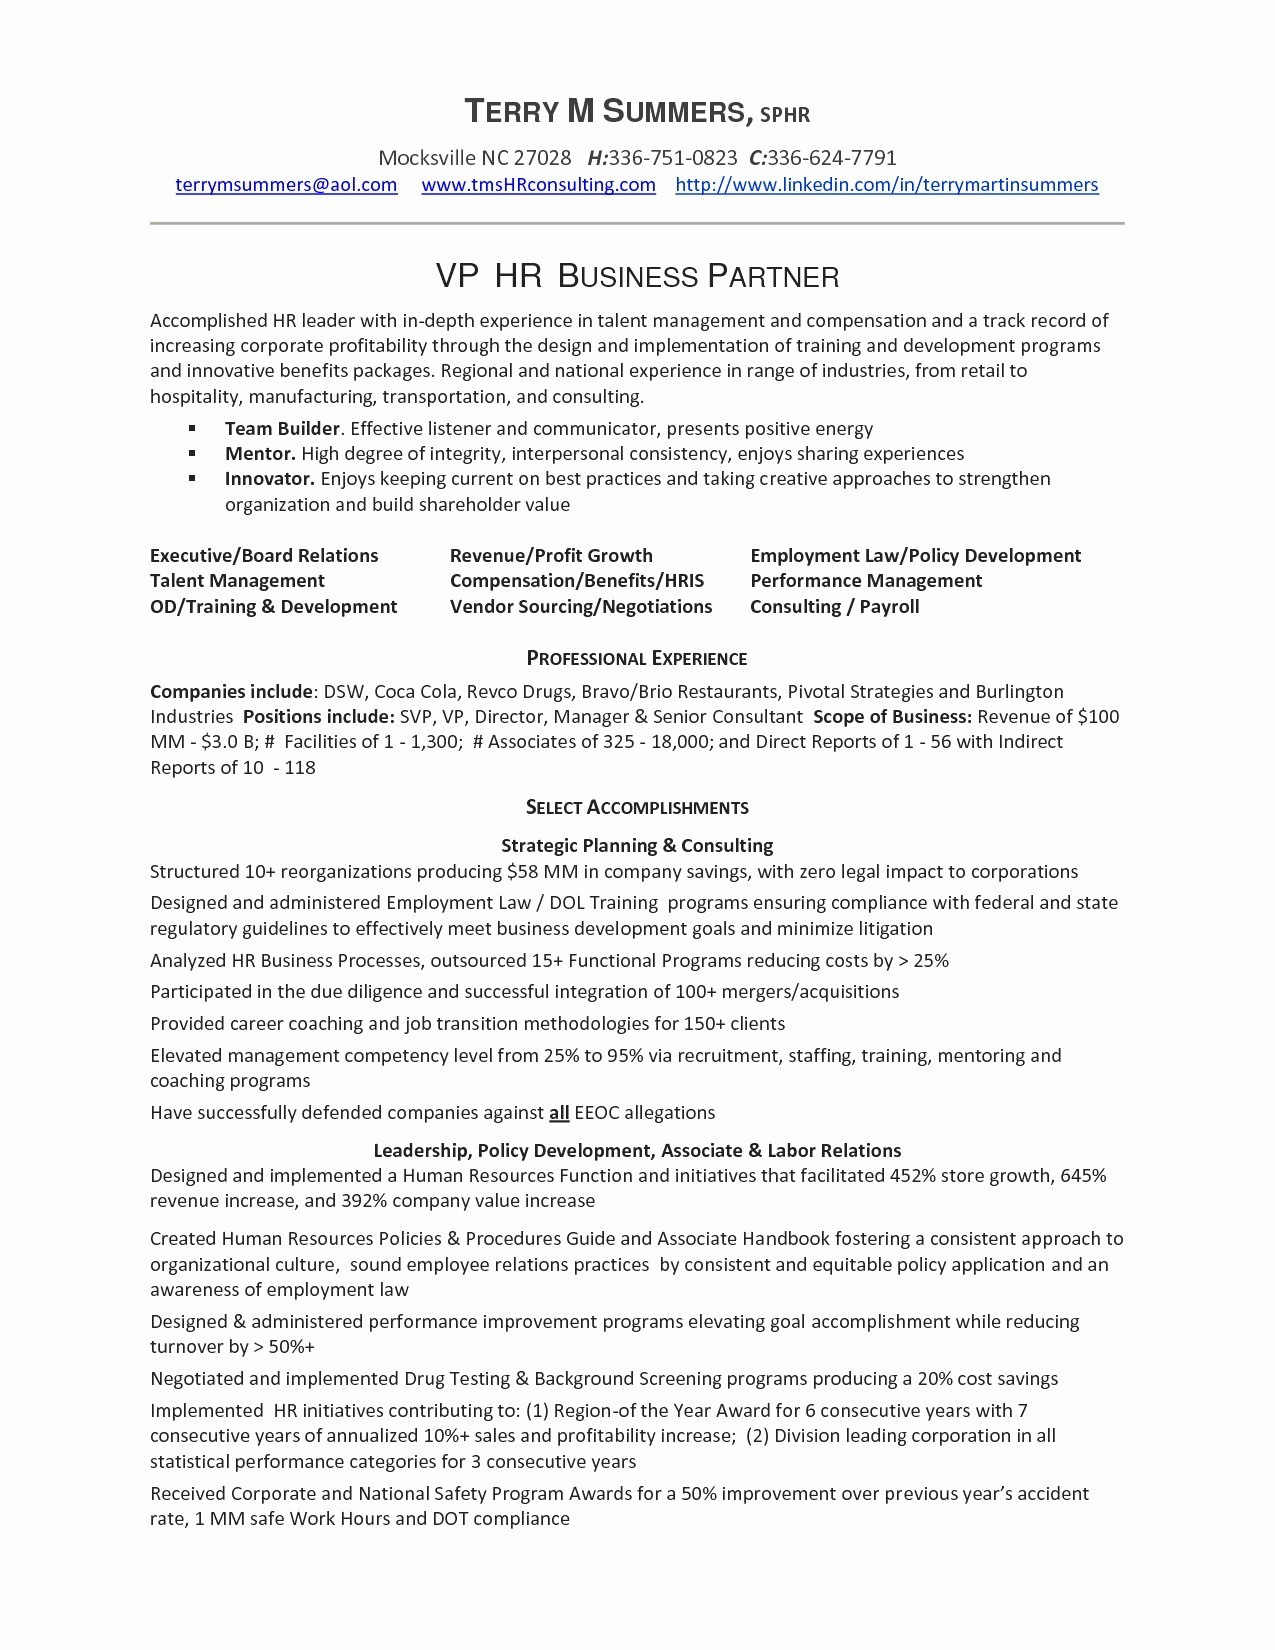 Store Manager Resume Template - Restaurant General Manager Resume Best General Manager Resume Sample